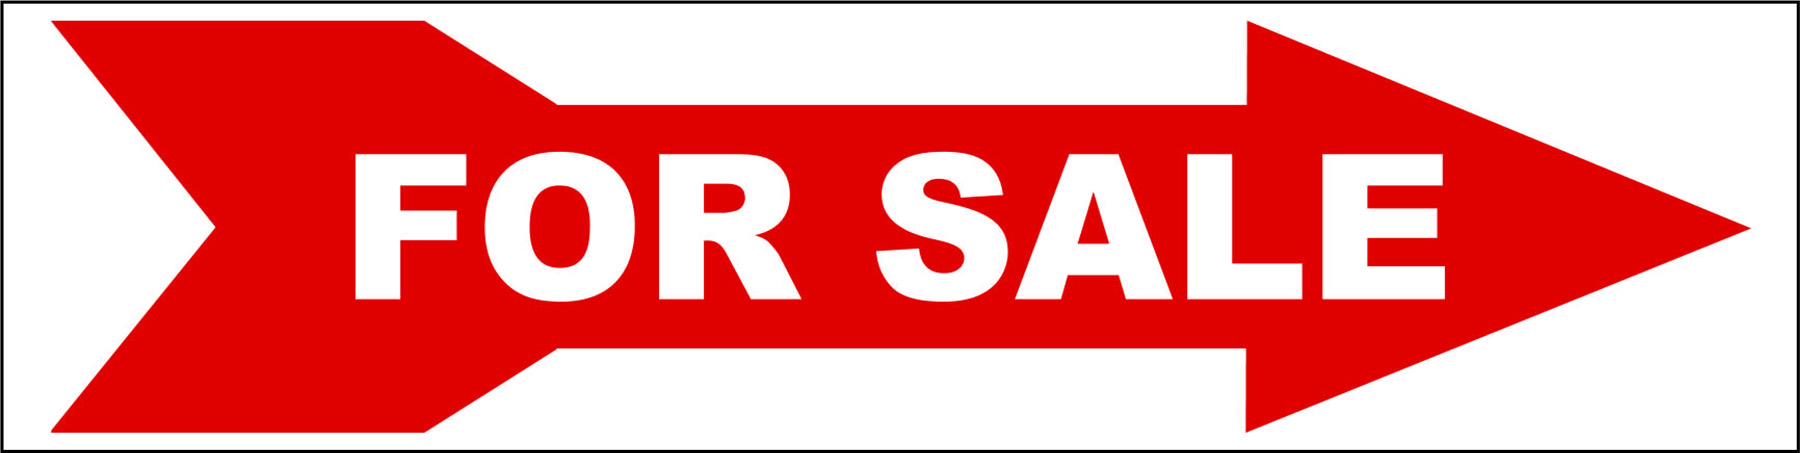 For Sale Directional